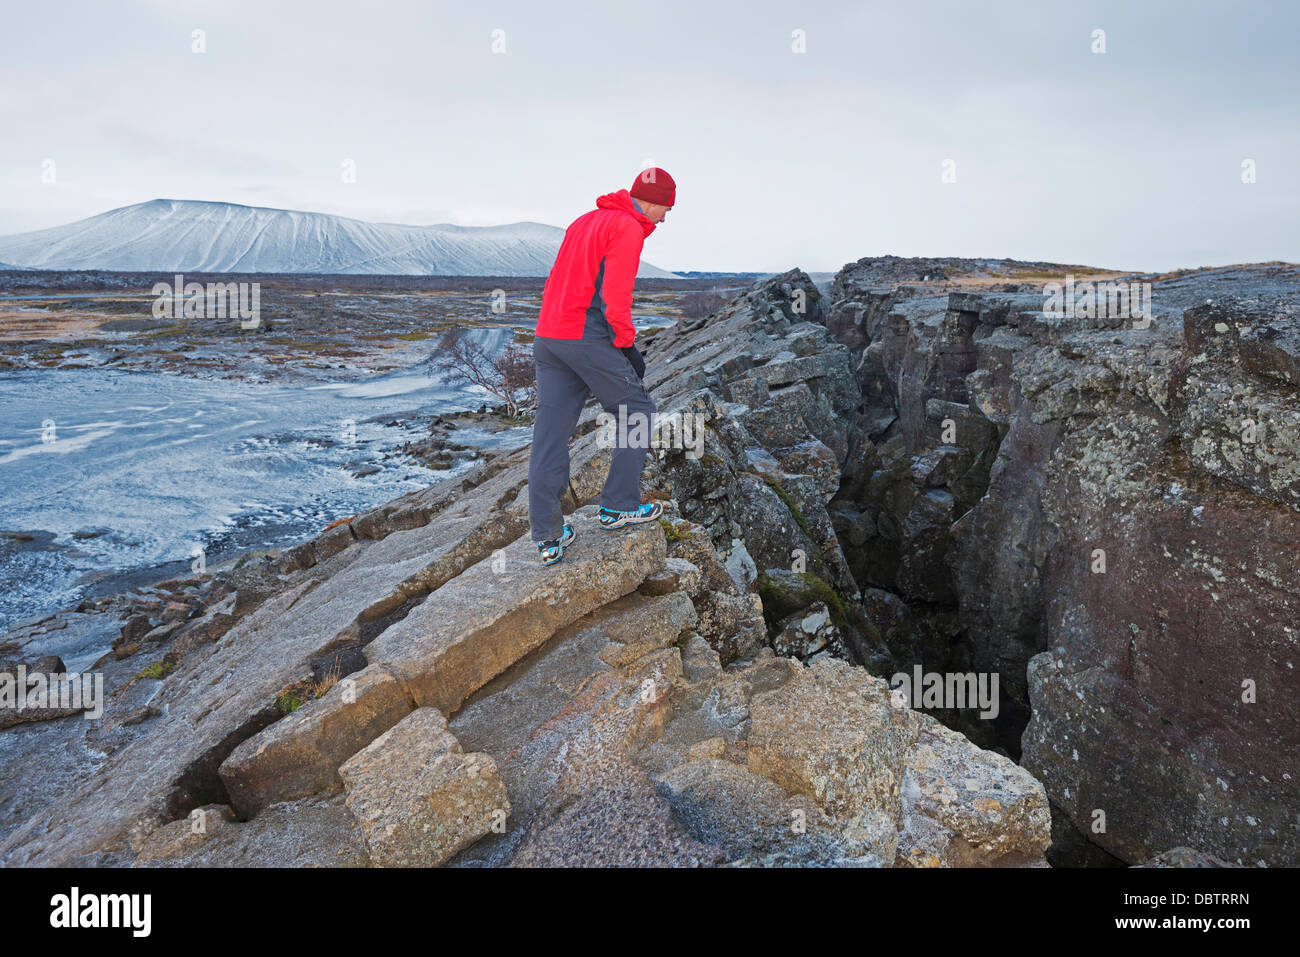 Diverging plates in a volcanic fissure zone, Myvatn, Iceland, Polar Regions - Stock Image